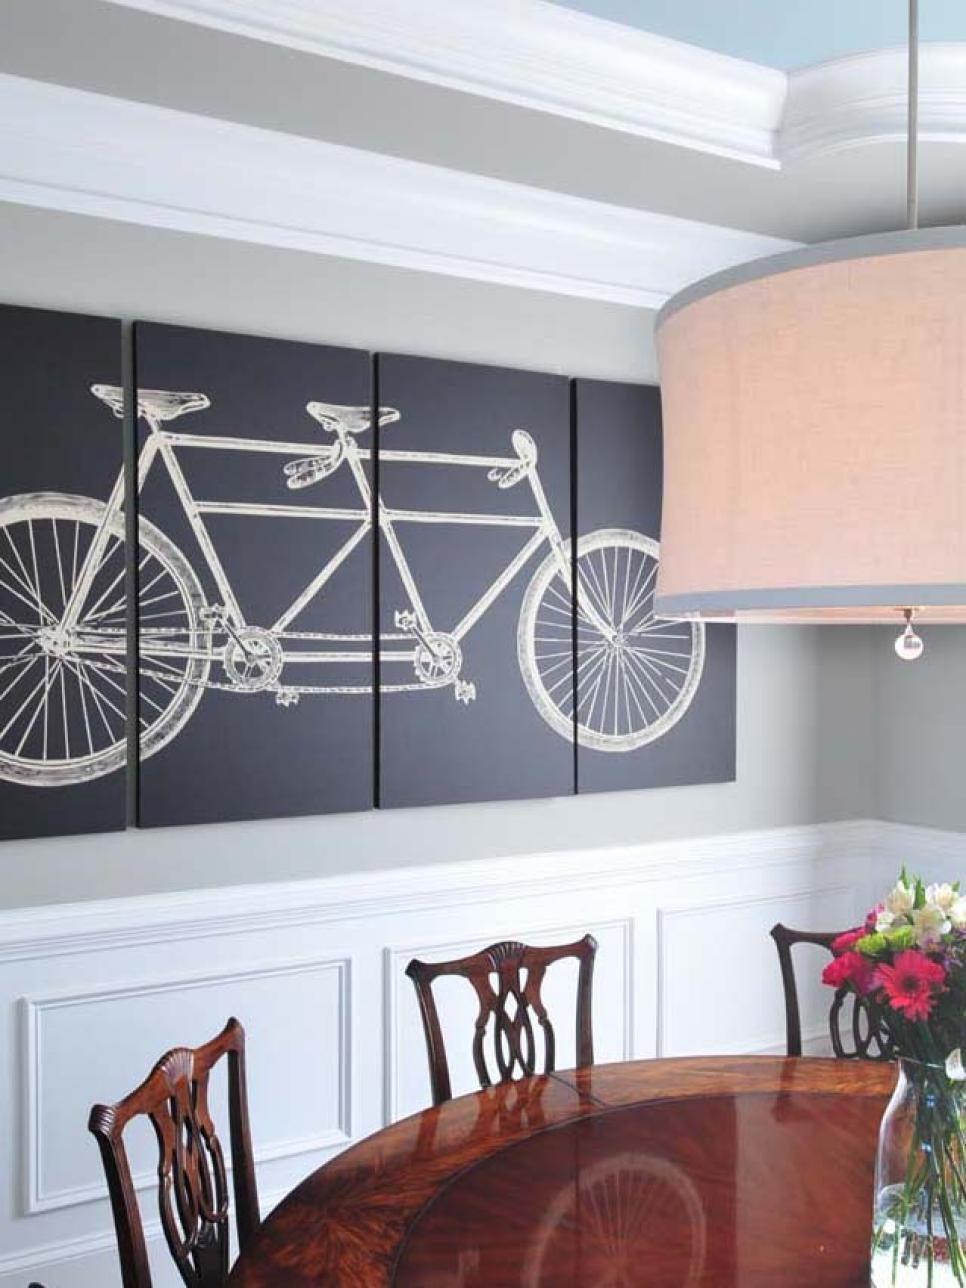 15 Dining Room Decorating Ideas | Hgtv Within Art For Dining Room Walls (View 13 of 20)